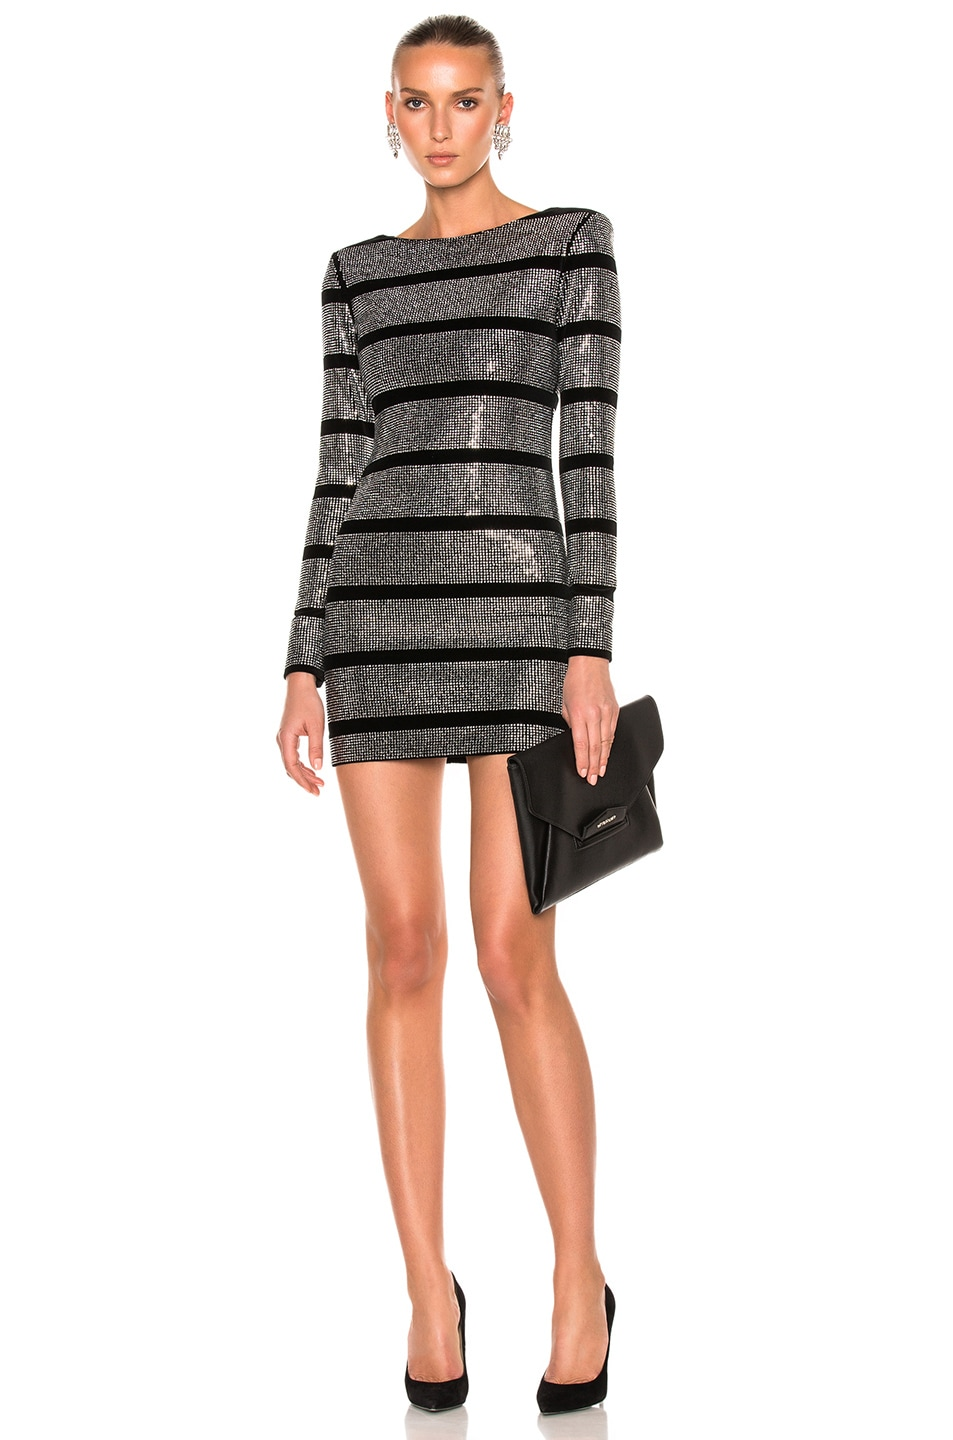 858aa04dde3 Image 1 of BALMAIN Velvet Embellished Mini Dress in Black   Silver